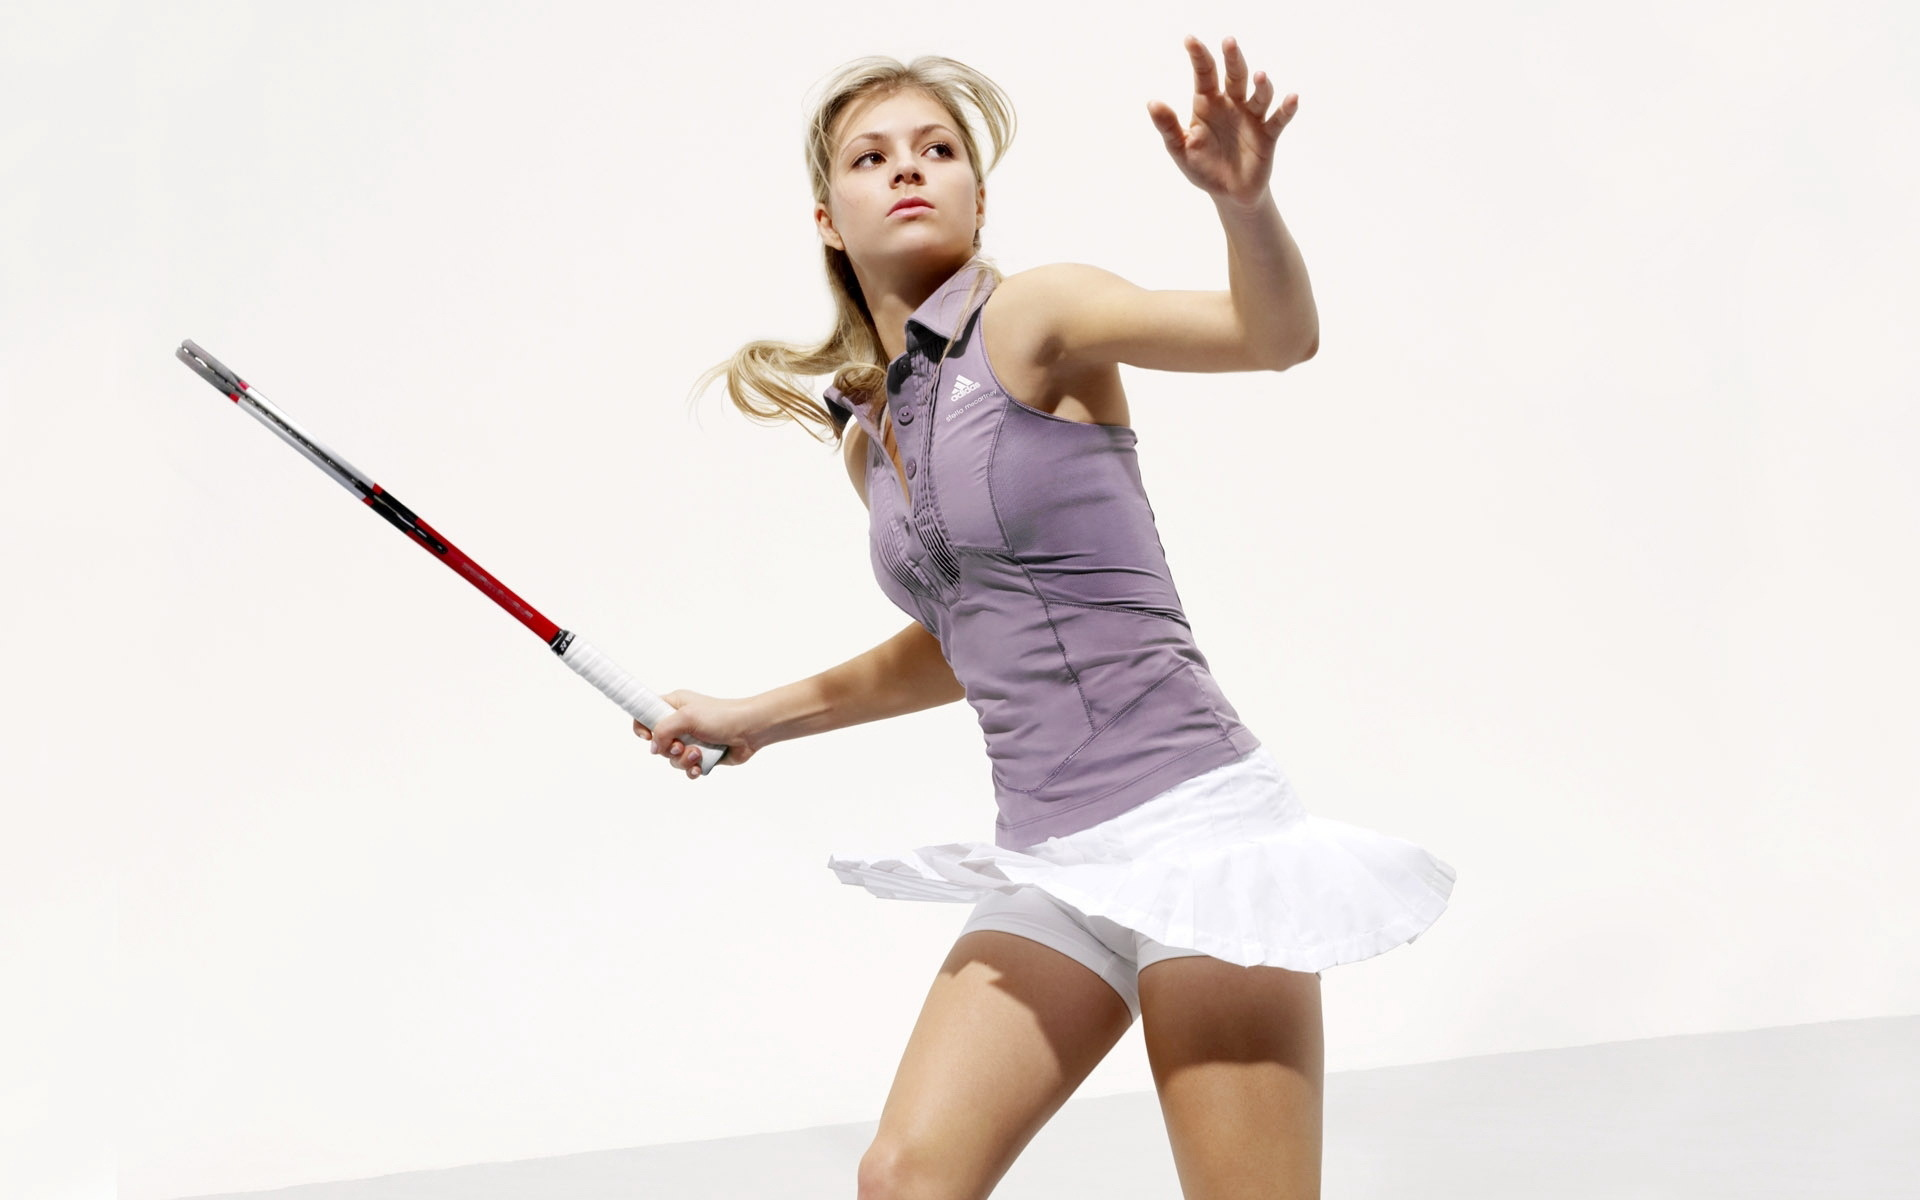 Sport Wallpaper Cute: Cute Maria Kirilenko (Tennis Player) Wallpapers